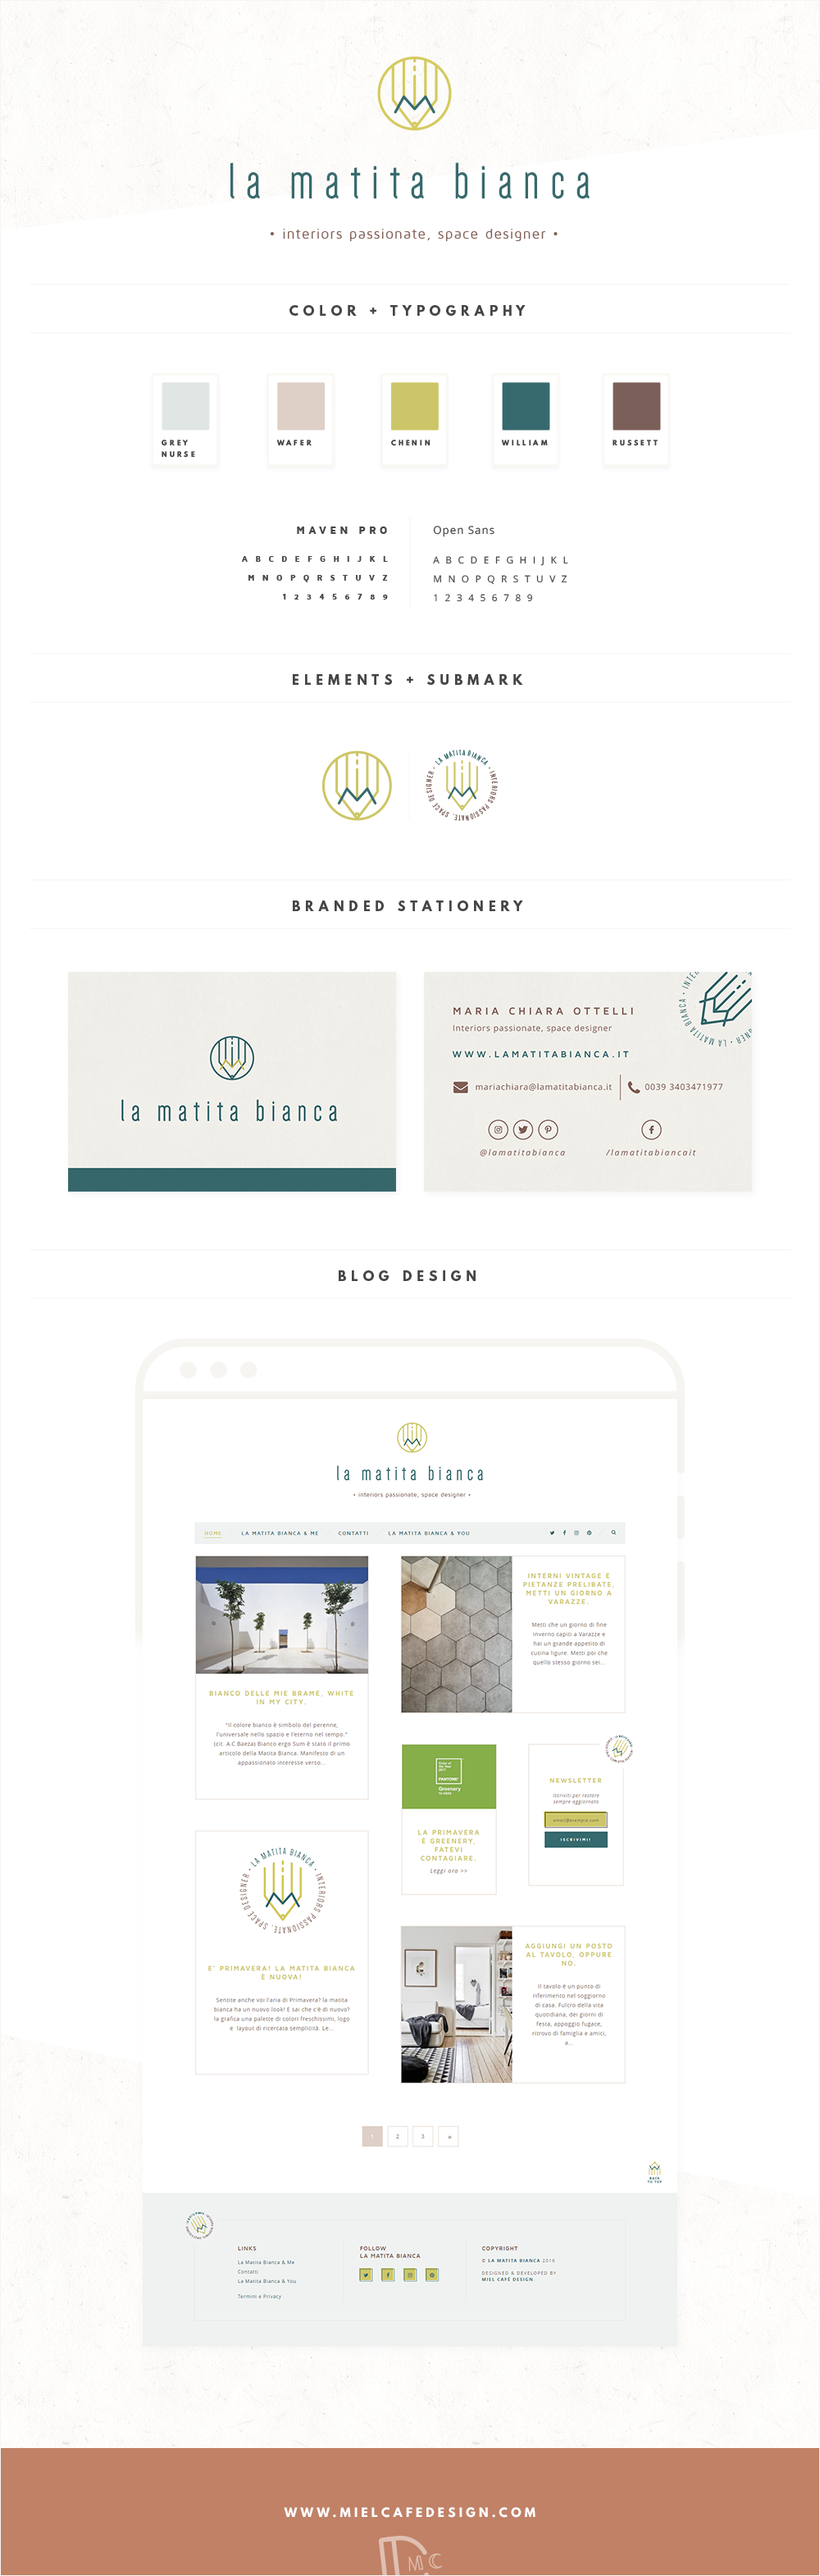 La Matita Bianca Custom Blog Design + Branded Stationery